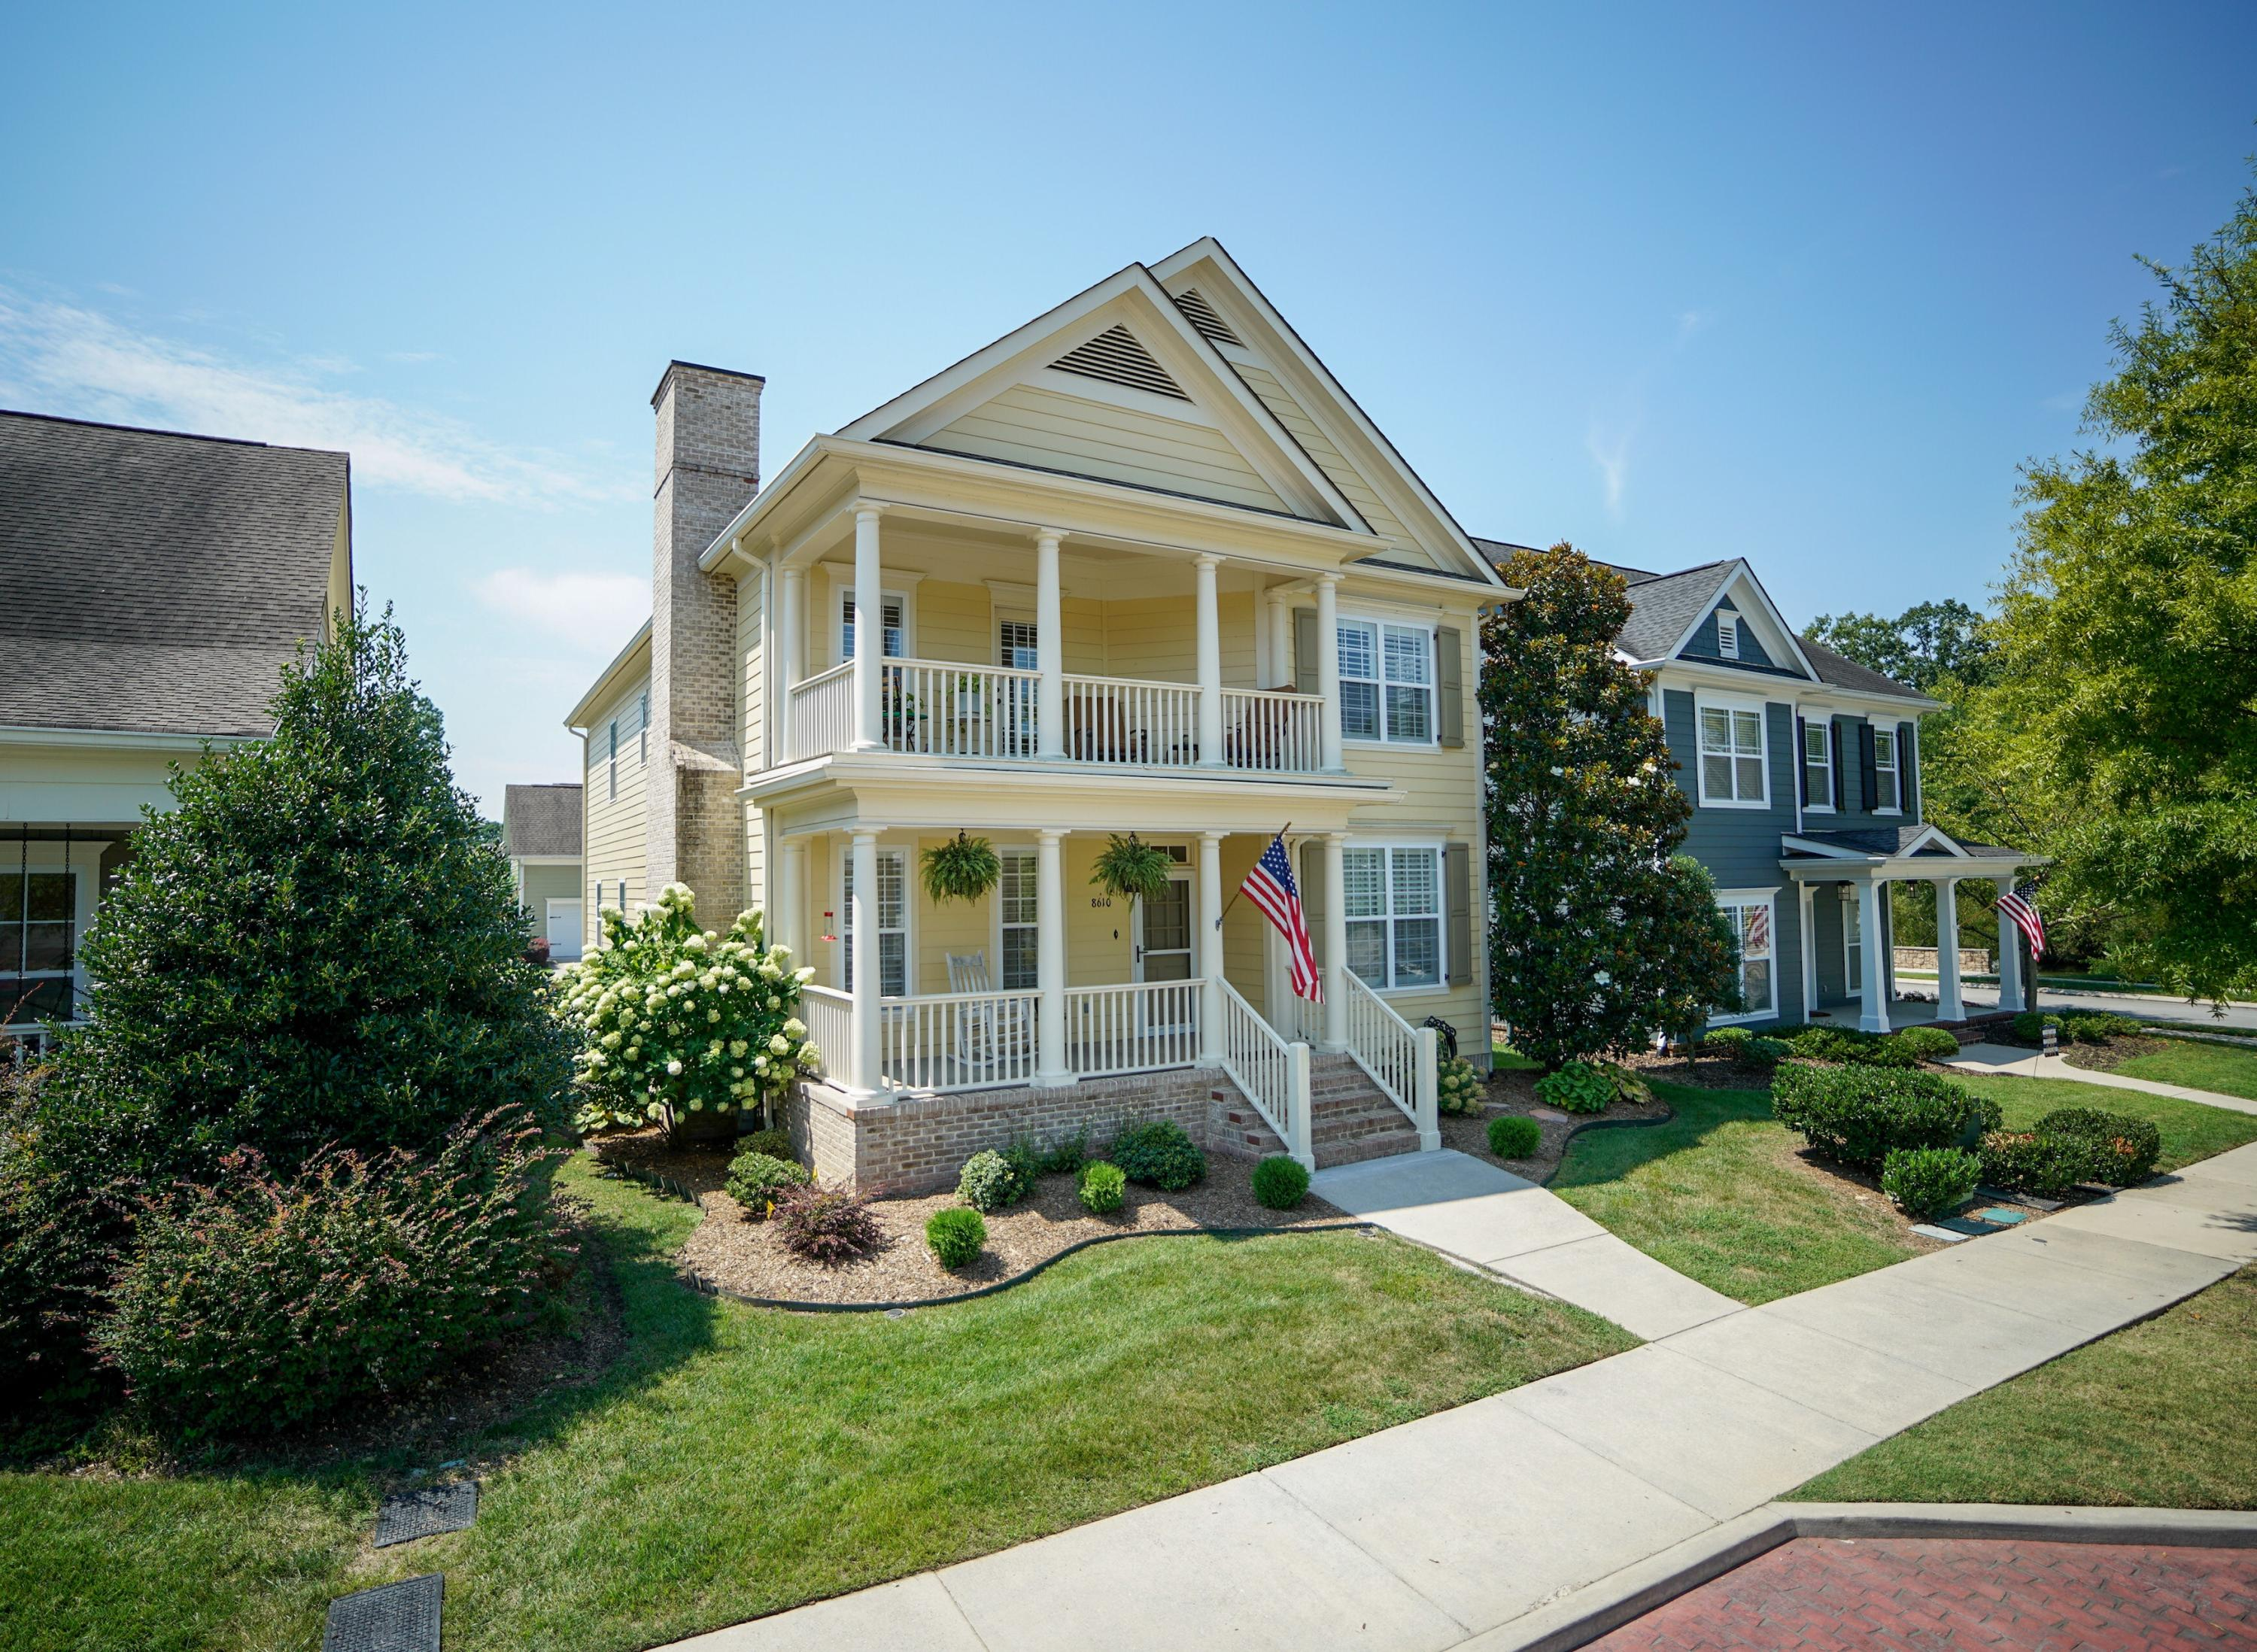 8610  Homecoming  Dr 37421 - One of Chattanooga Homes for Sale